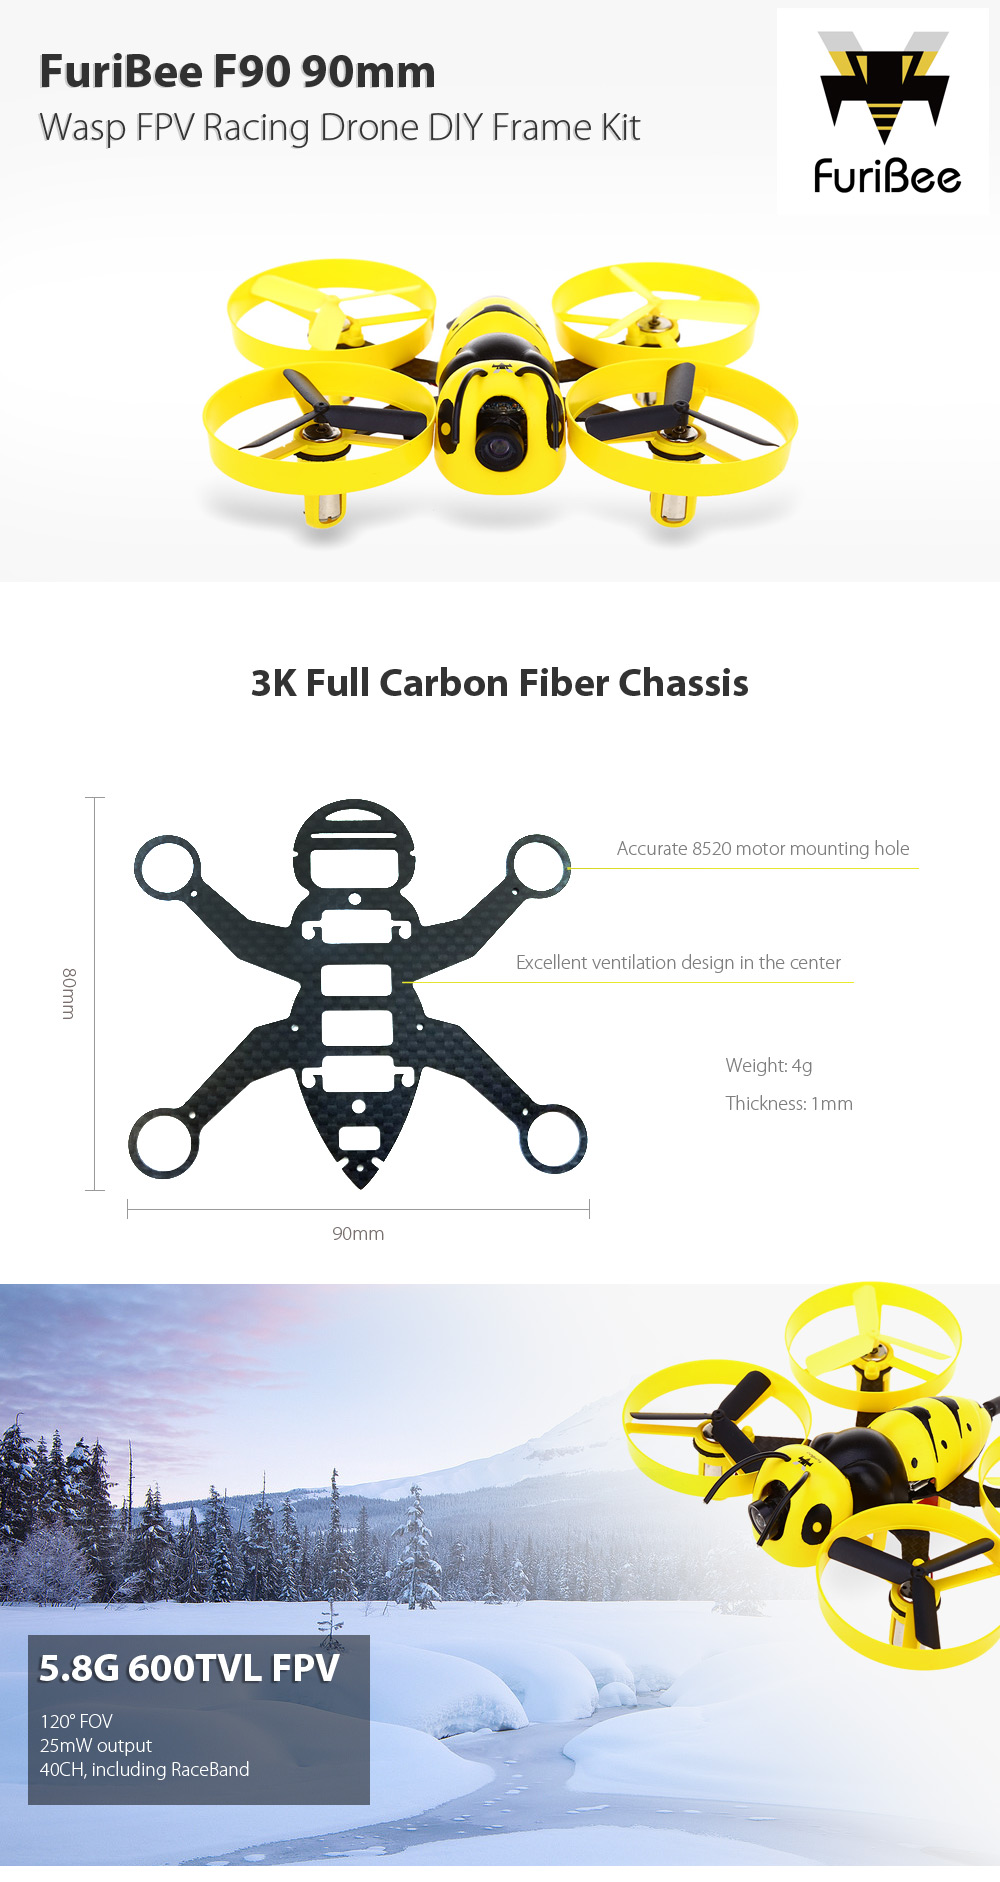 FuriBee F90 90mm Wasp FPV Racing Drone DIY Frame Kit 5.8G 600TVL / F3 Brushed FC / FLYSKY 6CH Receiver